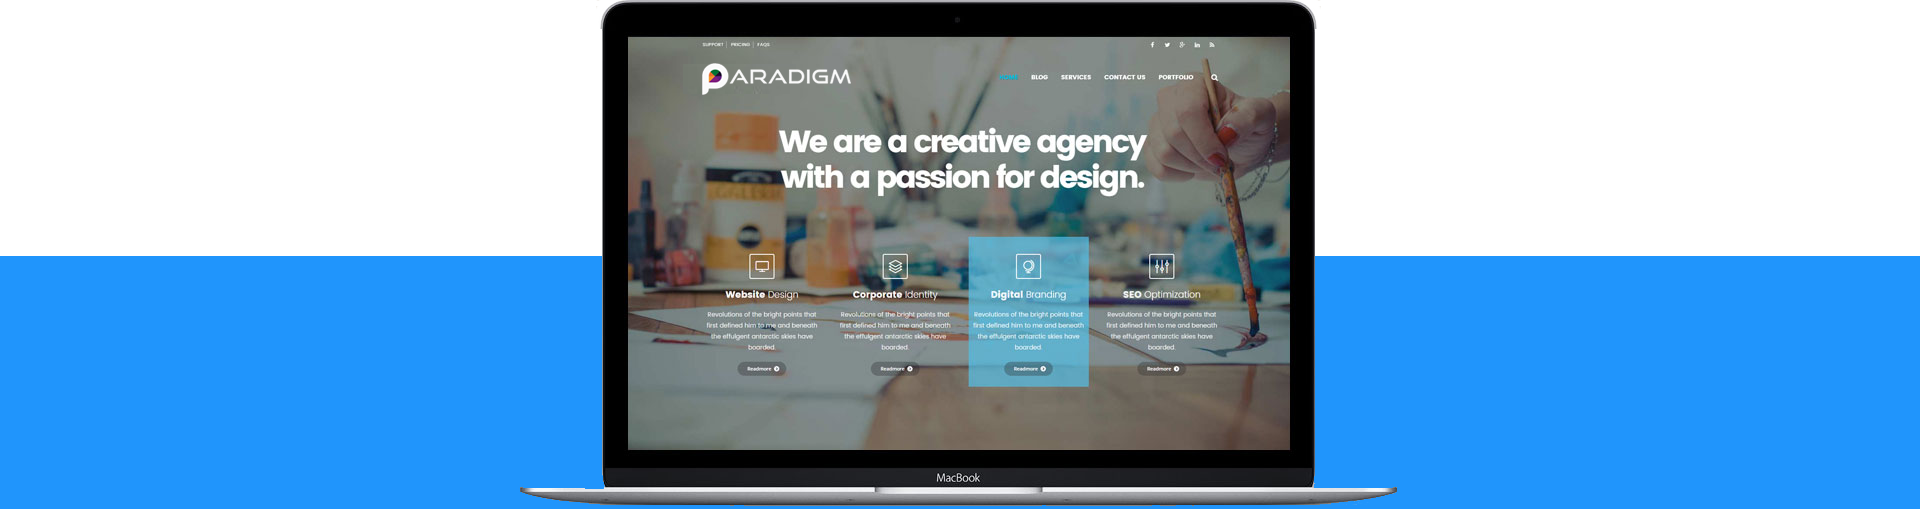 a creative agency with a passion for design